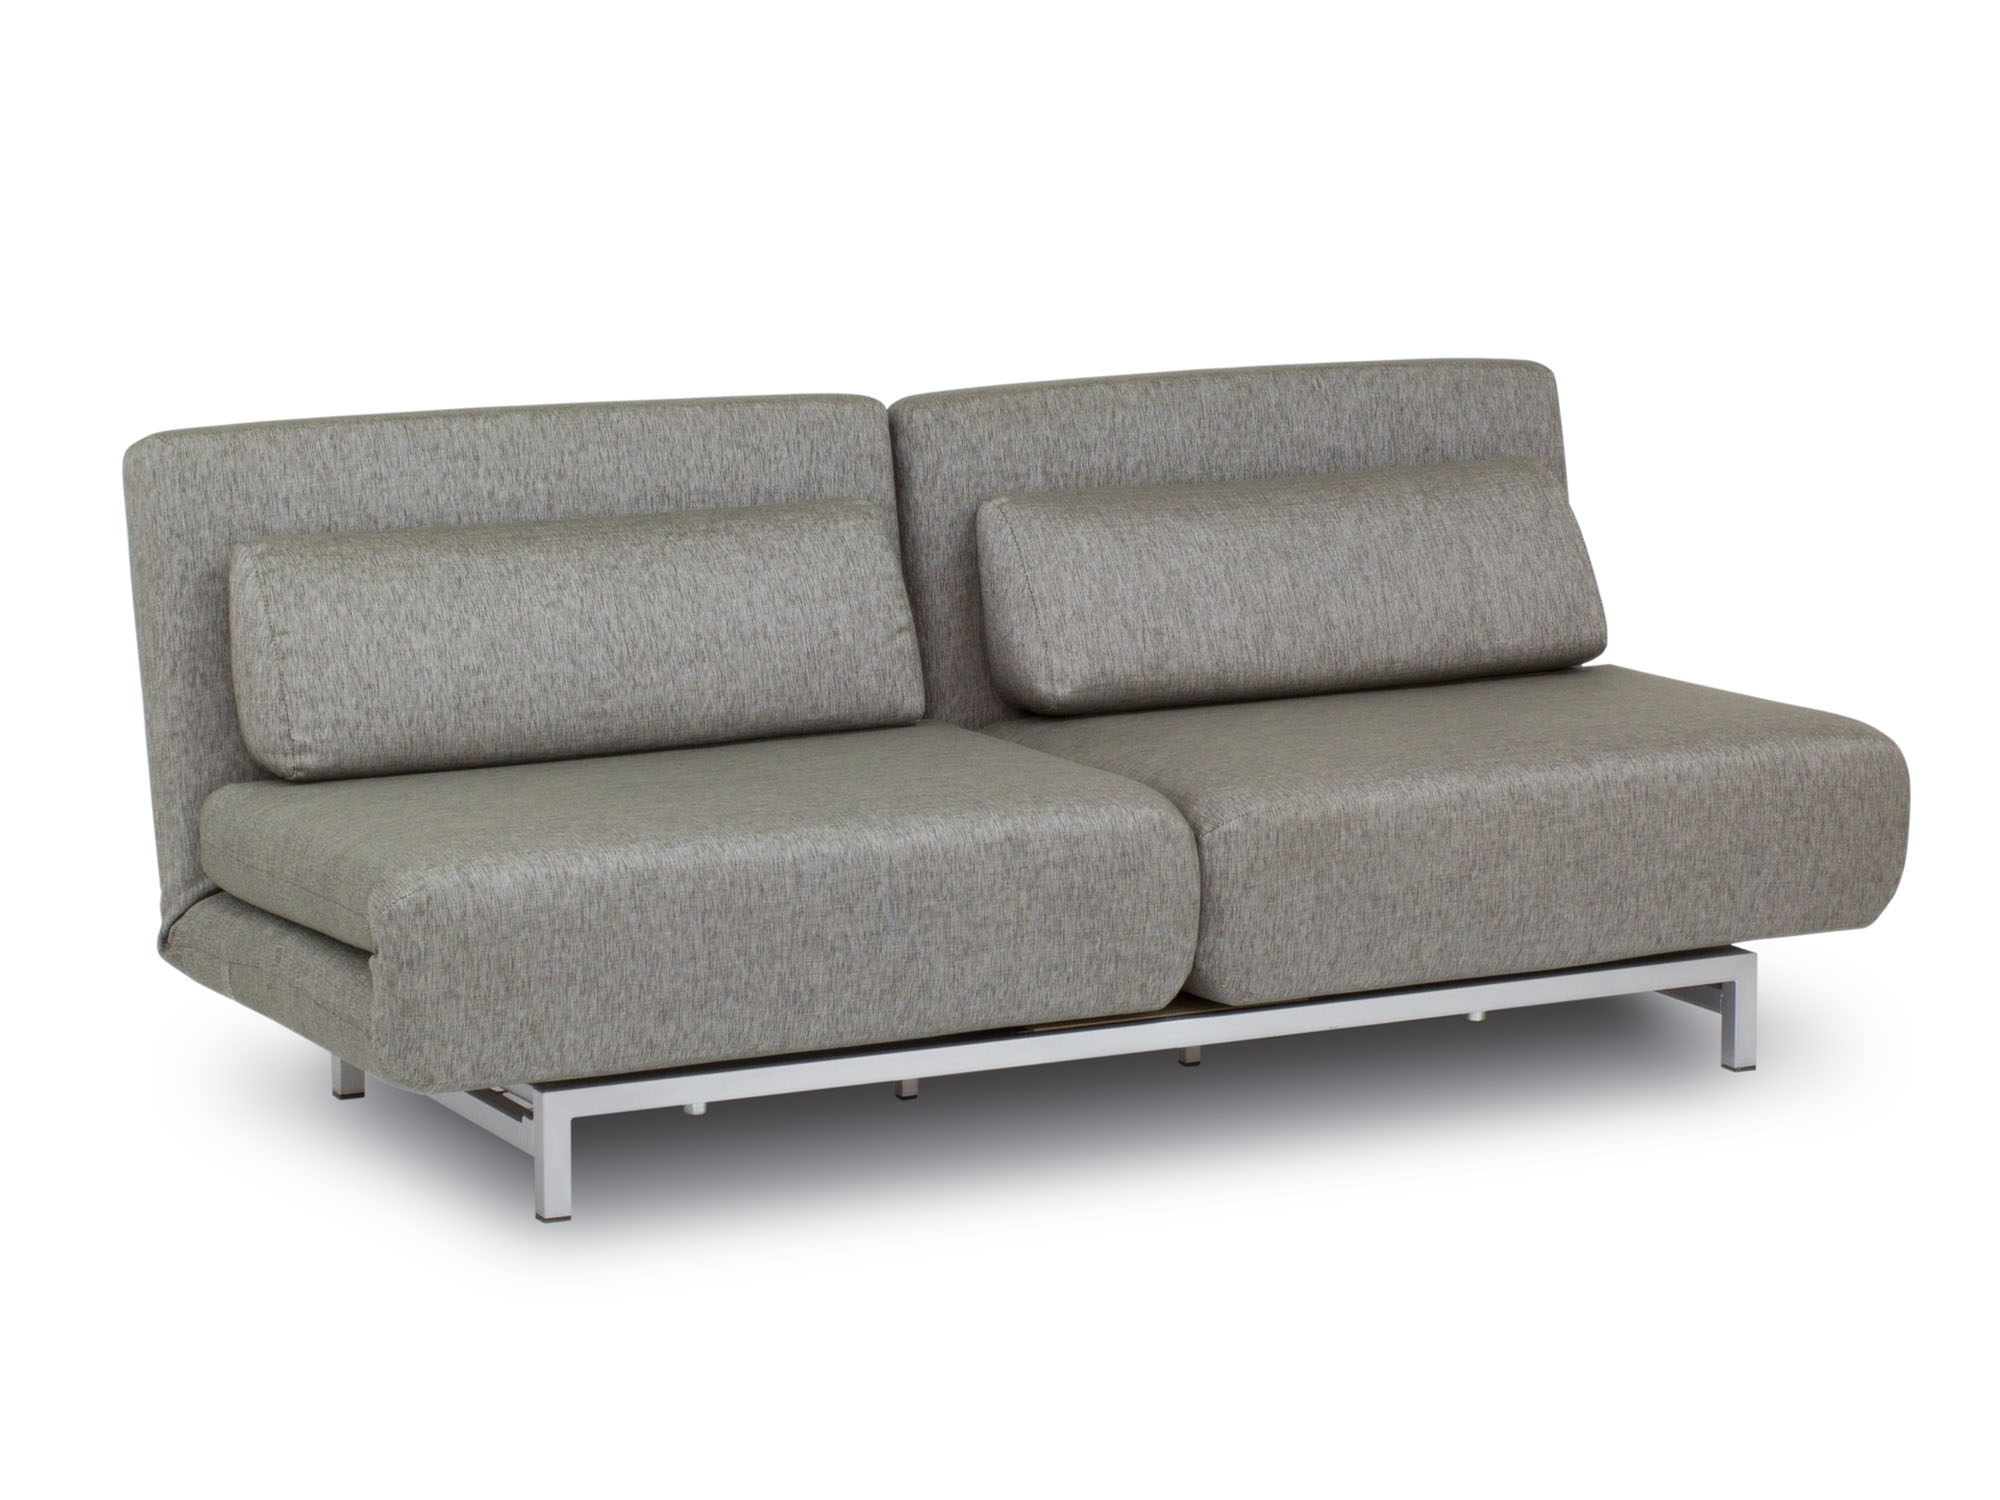 58 Single Seat Sofa Bed Chair Looks Like An Oversized Single For Sofa Bed Chairs (Photo 3 of 15)